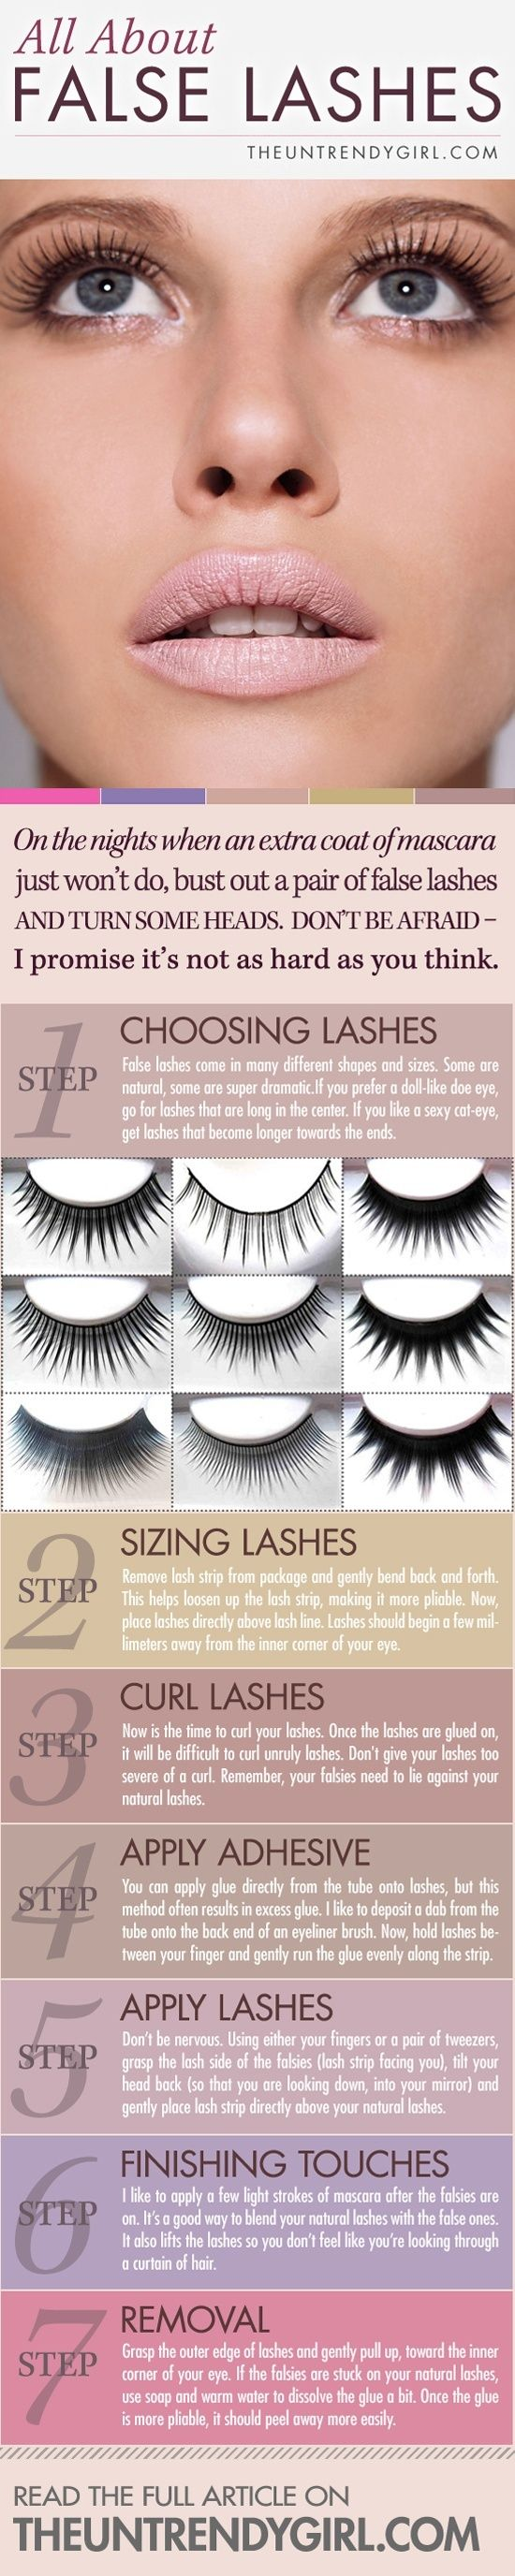 All about false lashes - I have never been bold enough to try and put fake eyelashes on maybe this will help me.